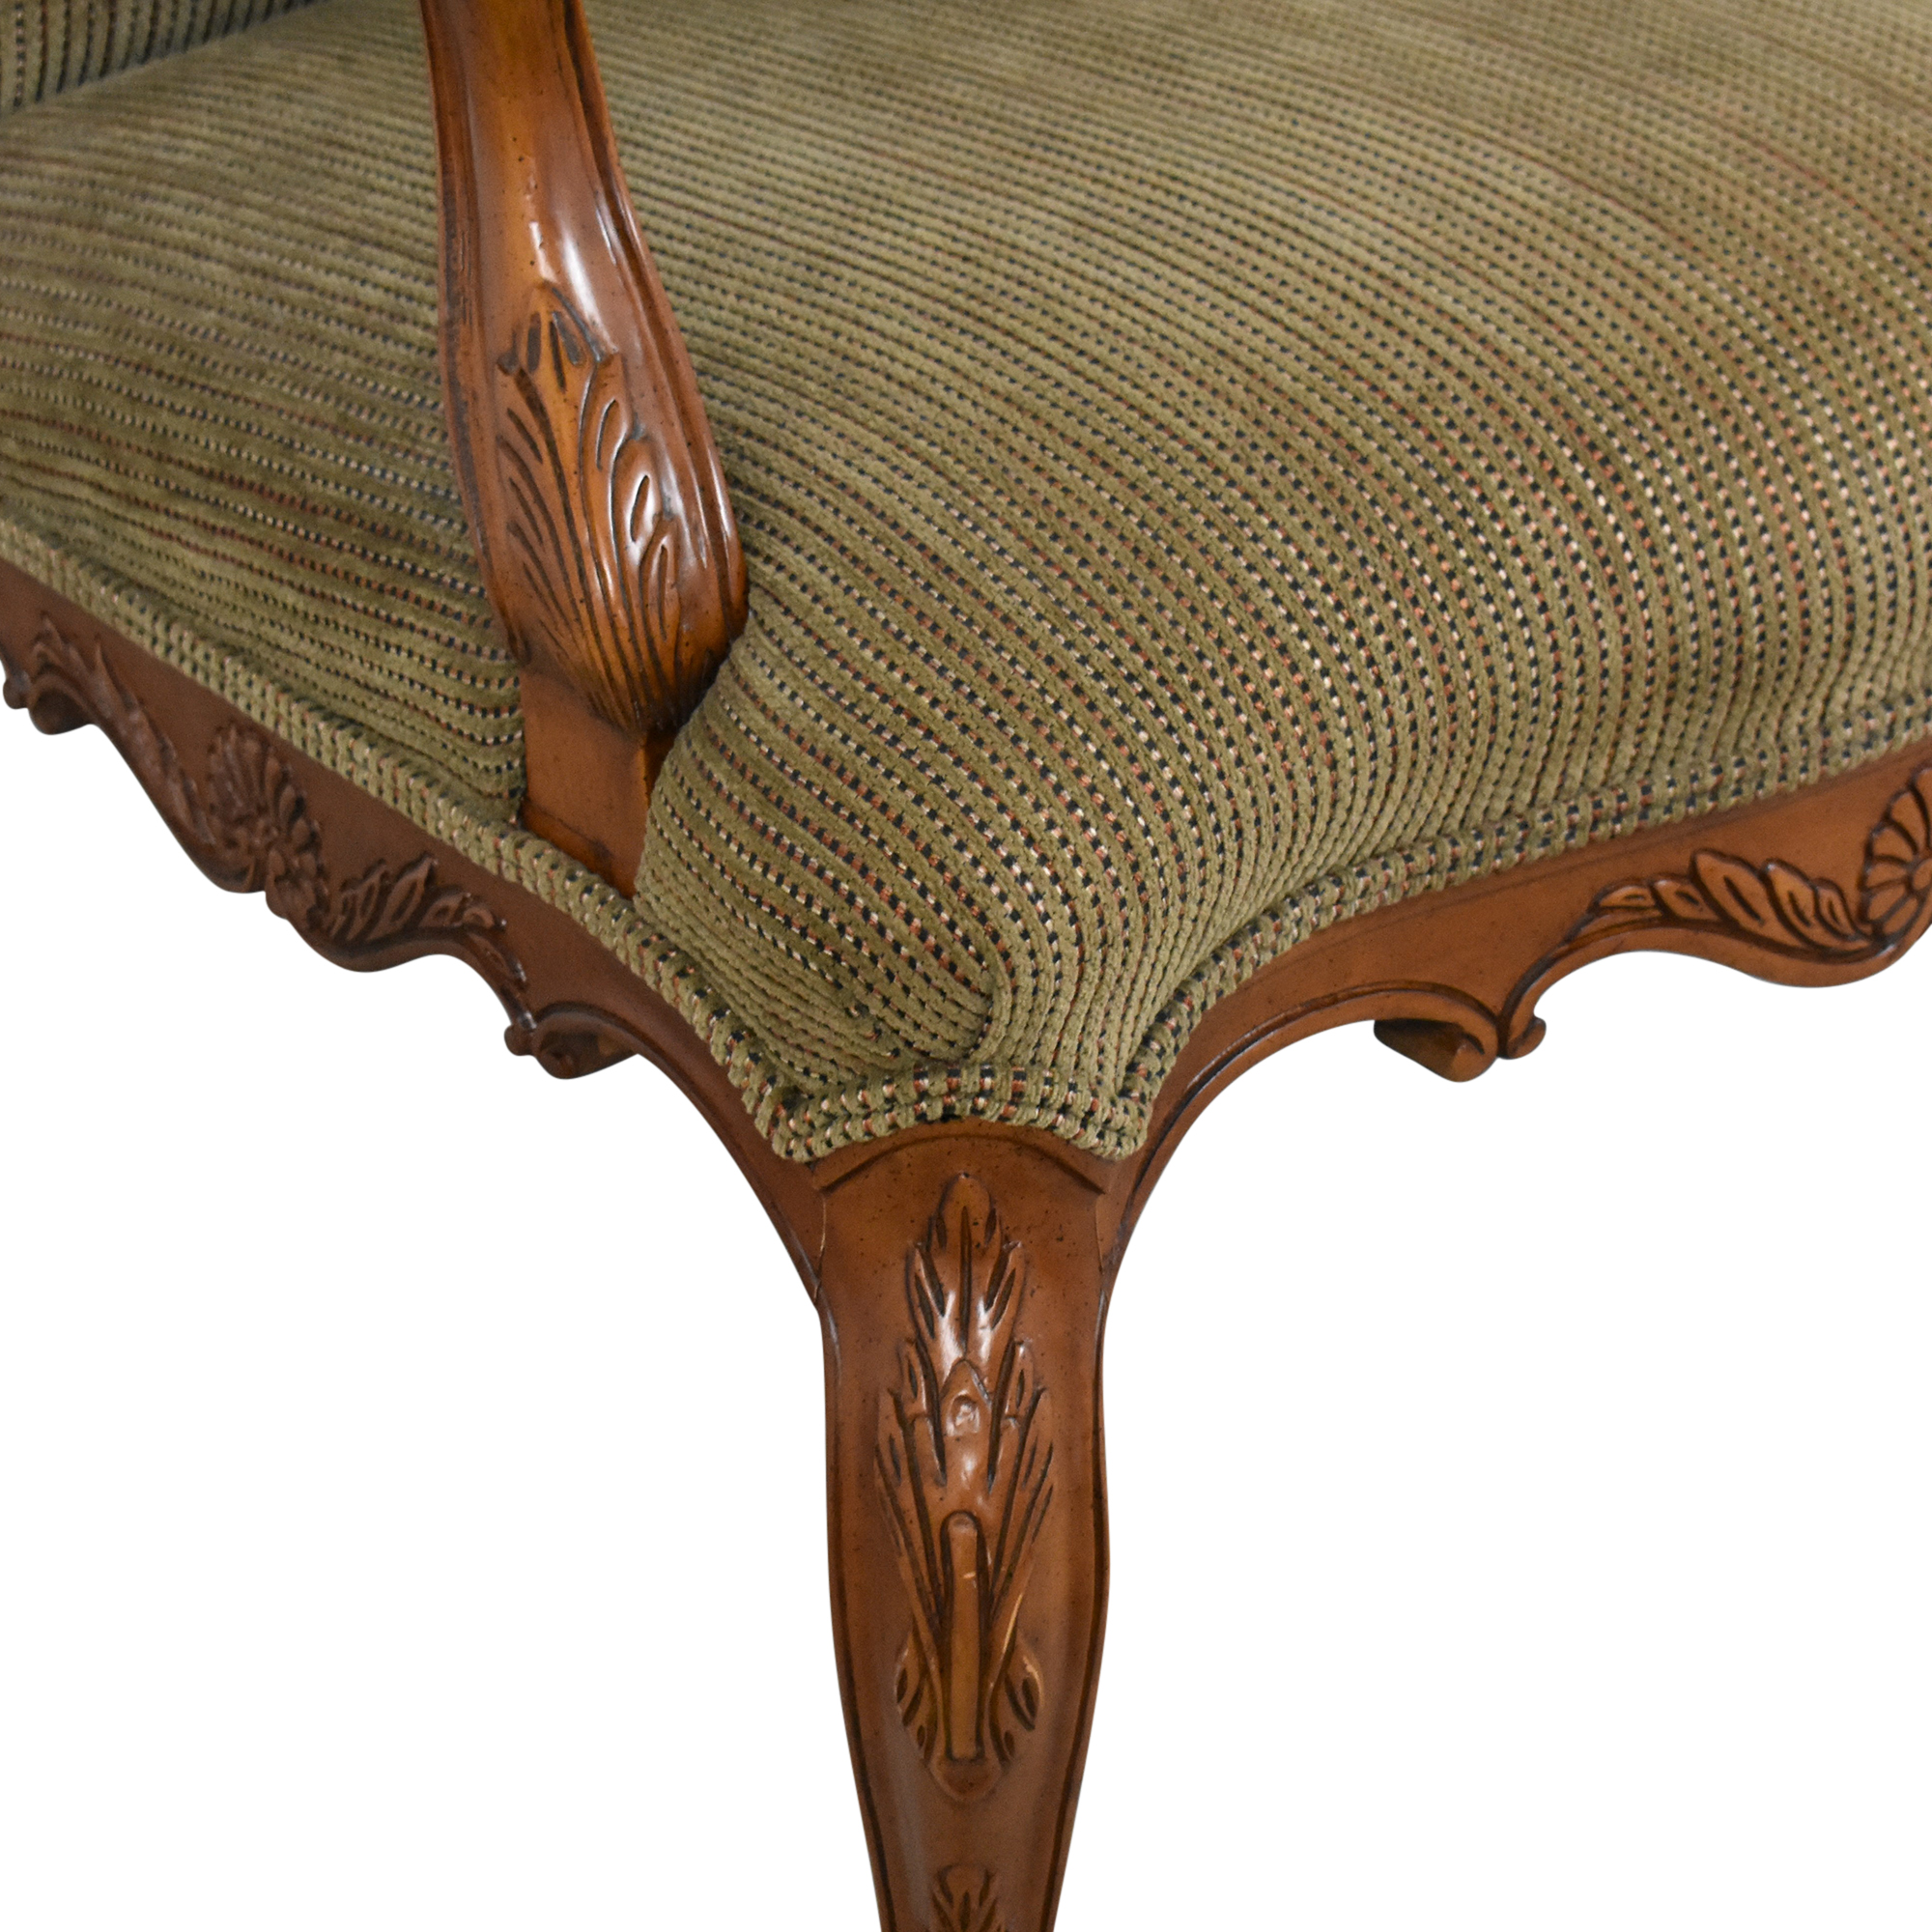 Drexel Heritage Drexel Heritage Accent Chair used